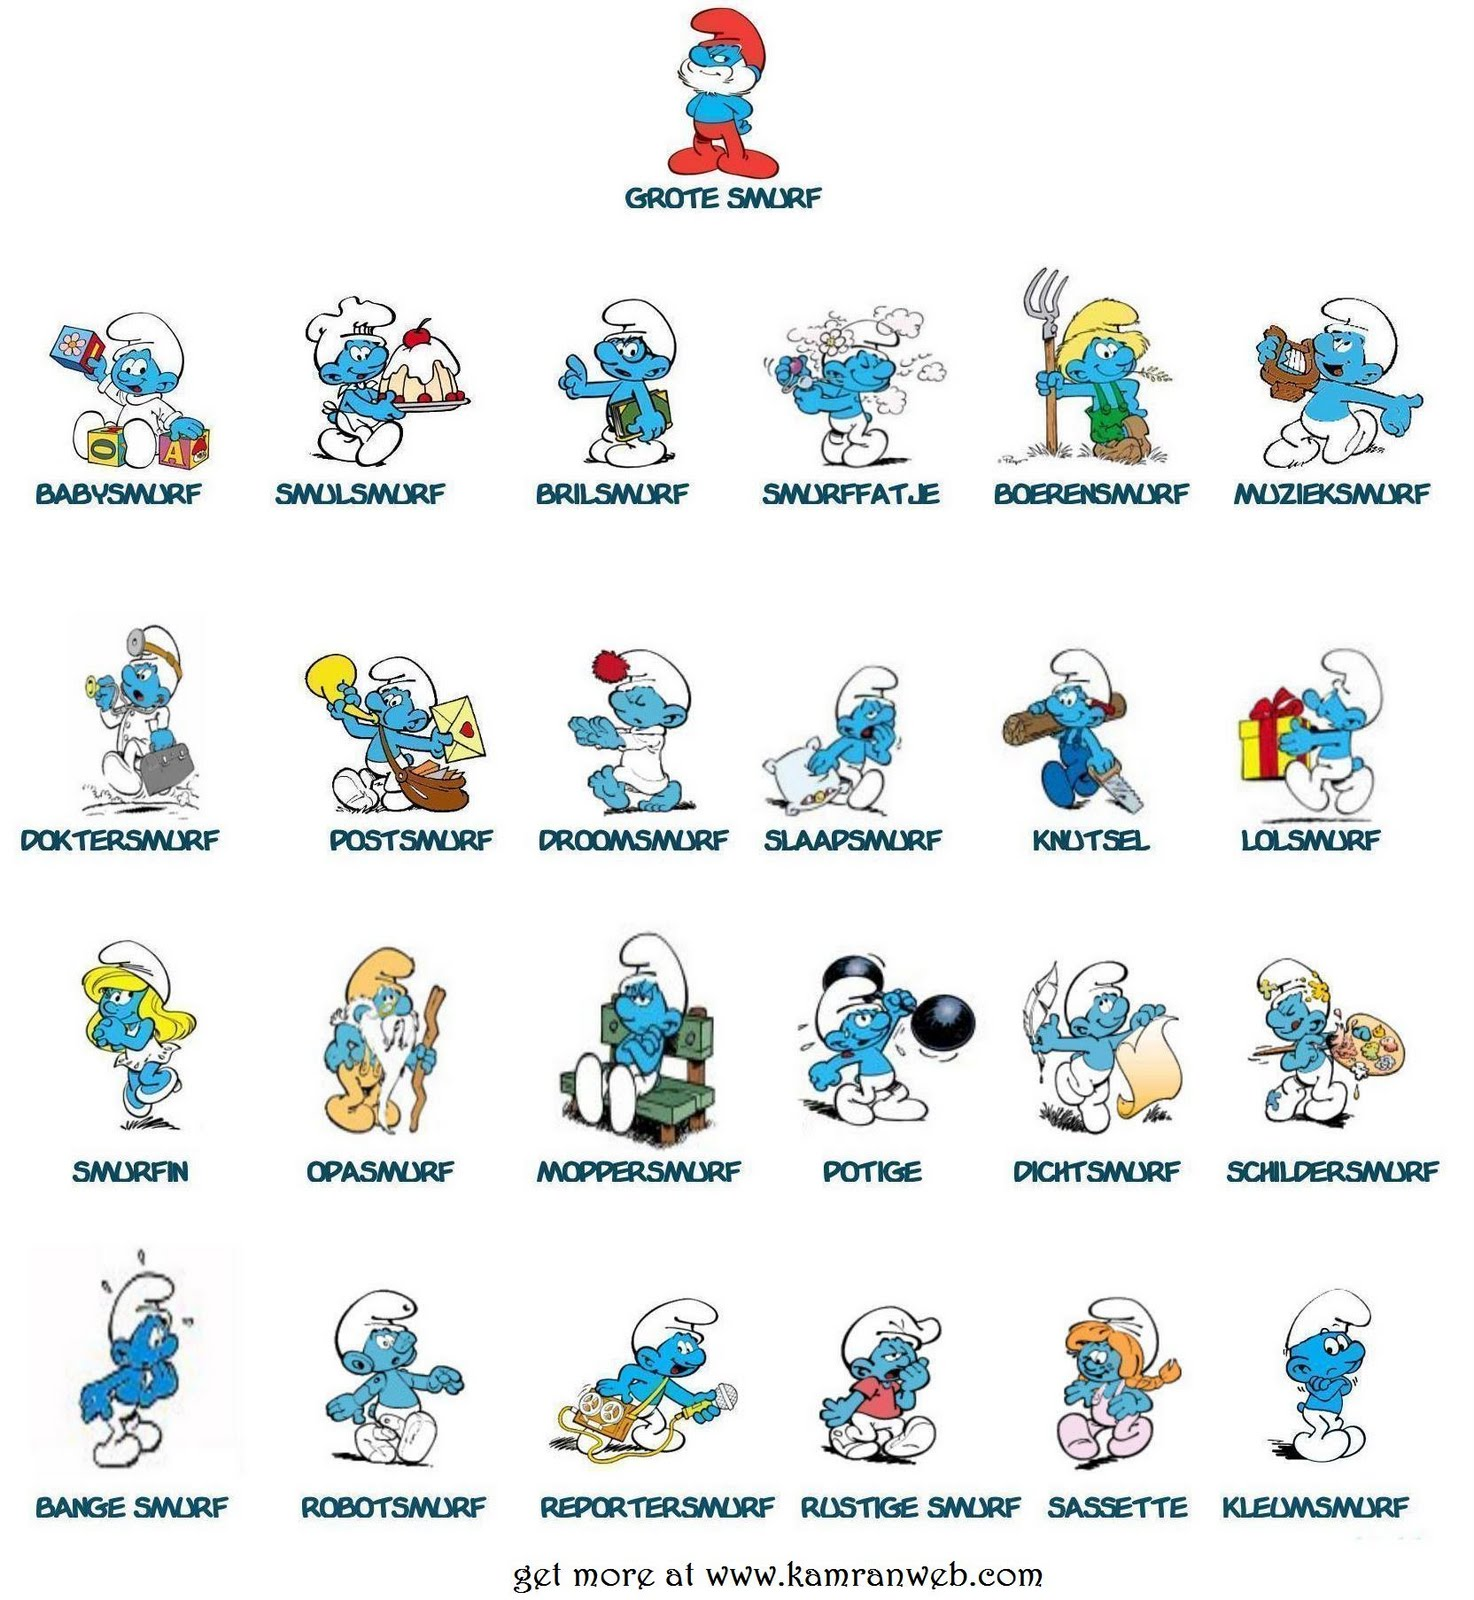 The Smurfs - UtaraSelatan